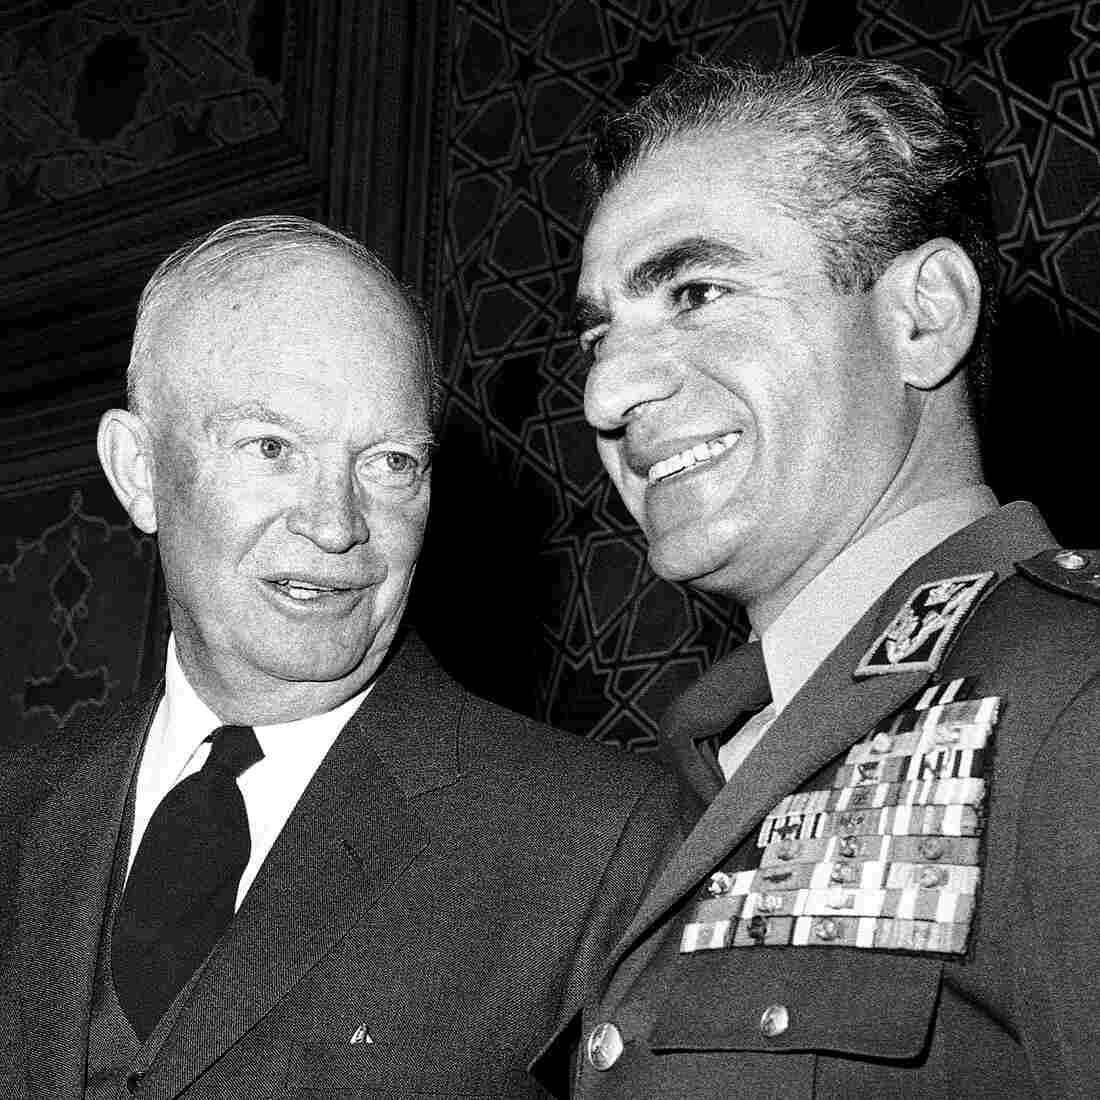 President Eisenhower (left) visited Iran's Shah Reza Pahlavi in Tehran in 1959. The U.S. had begun working with Iran to launch its nuclear program two years earlier and would provide Iran with its first nuclear research reactor in the 1960s, at Tehran University.